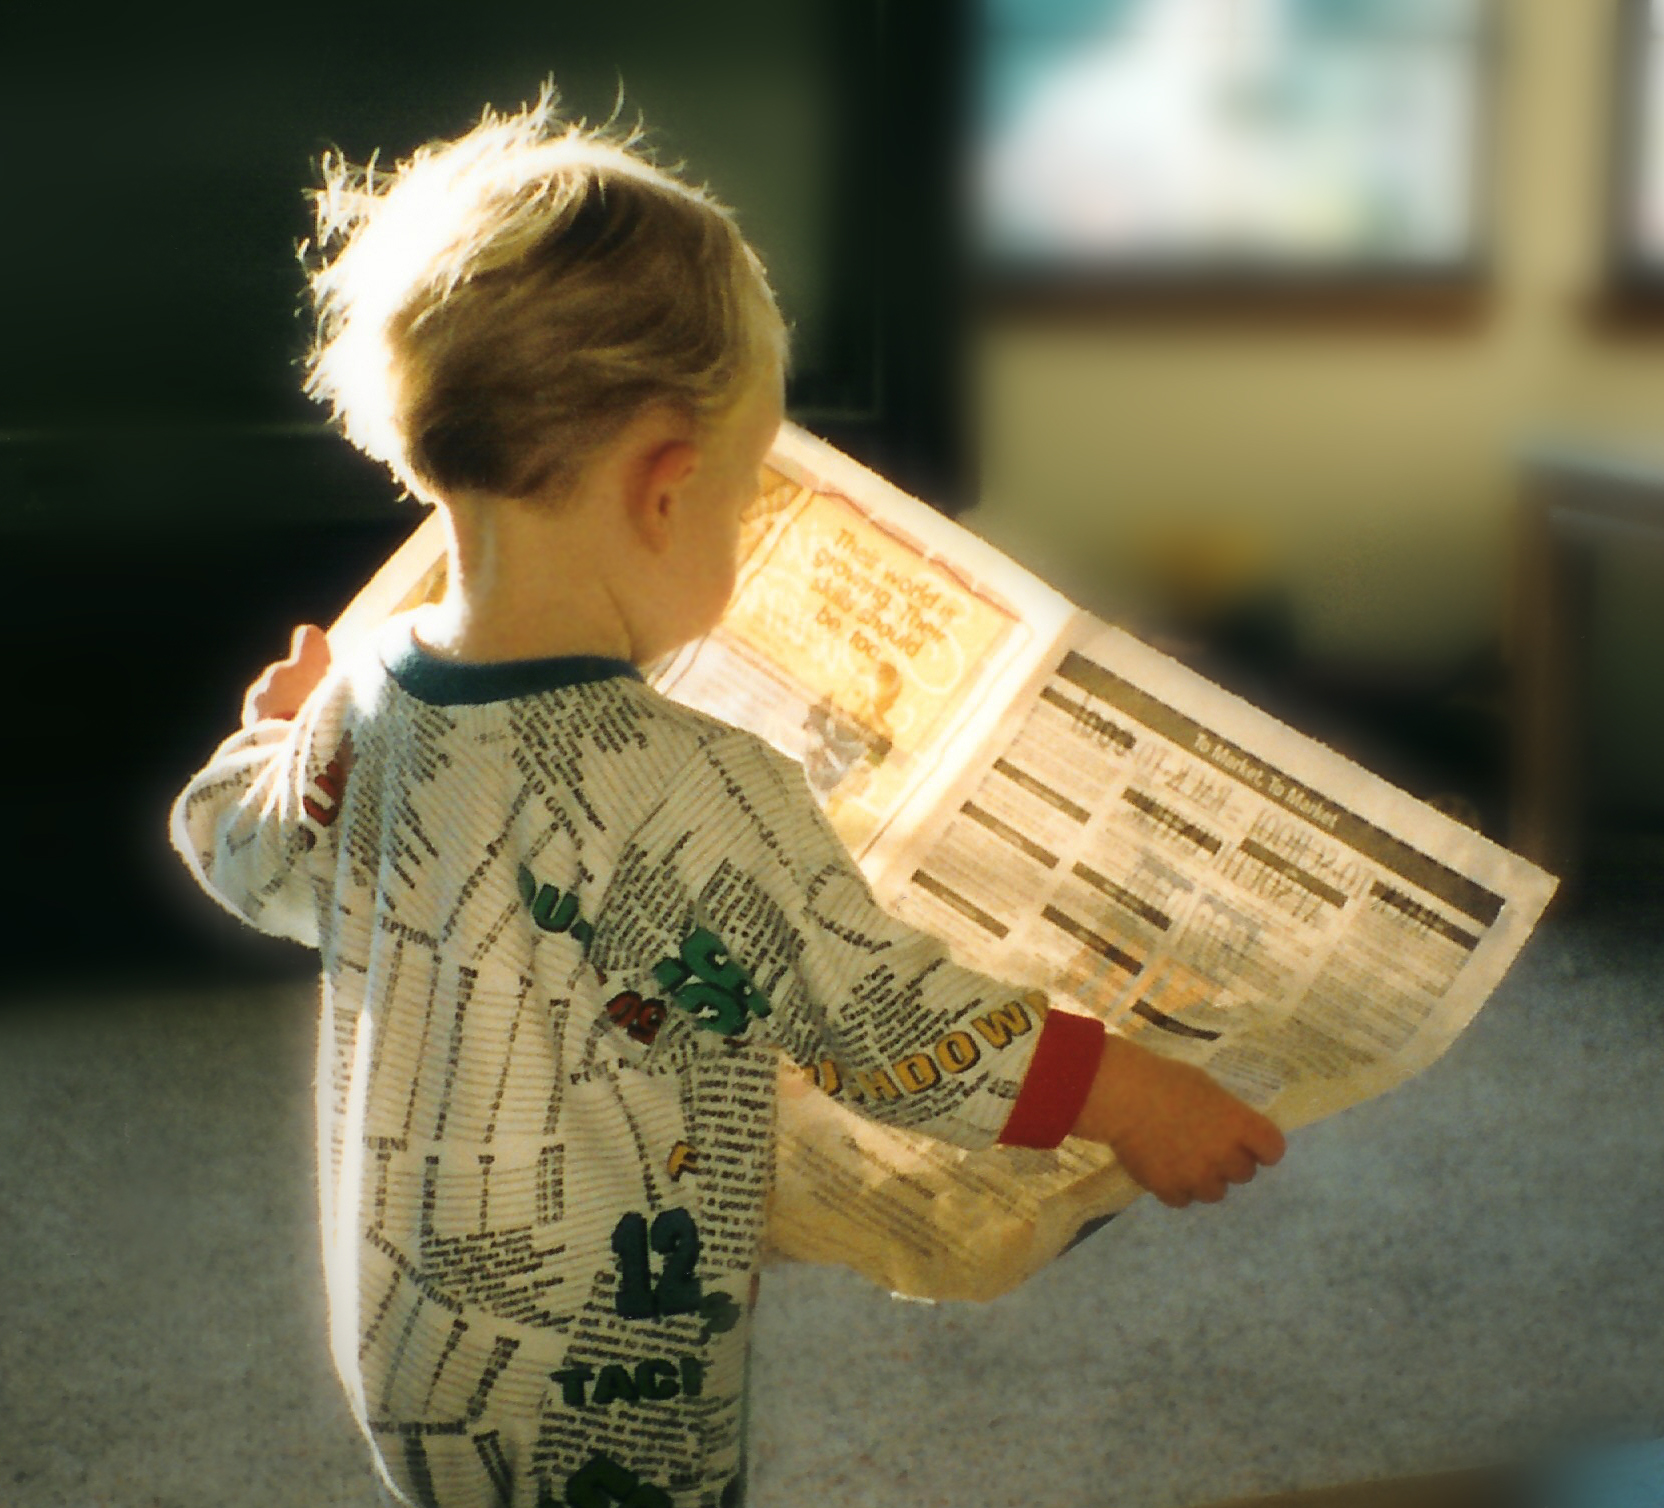 Baby reading a newspaper image by criswatk via sxc.hu